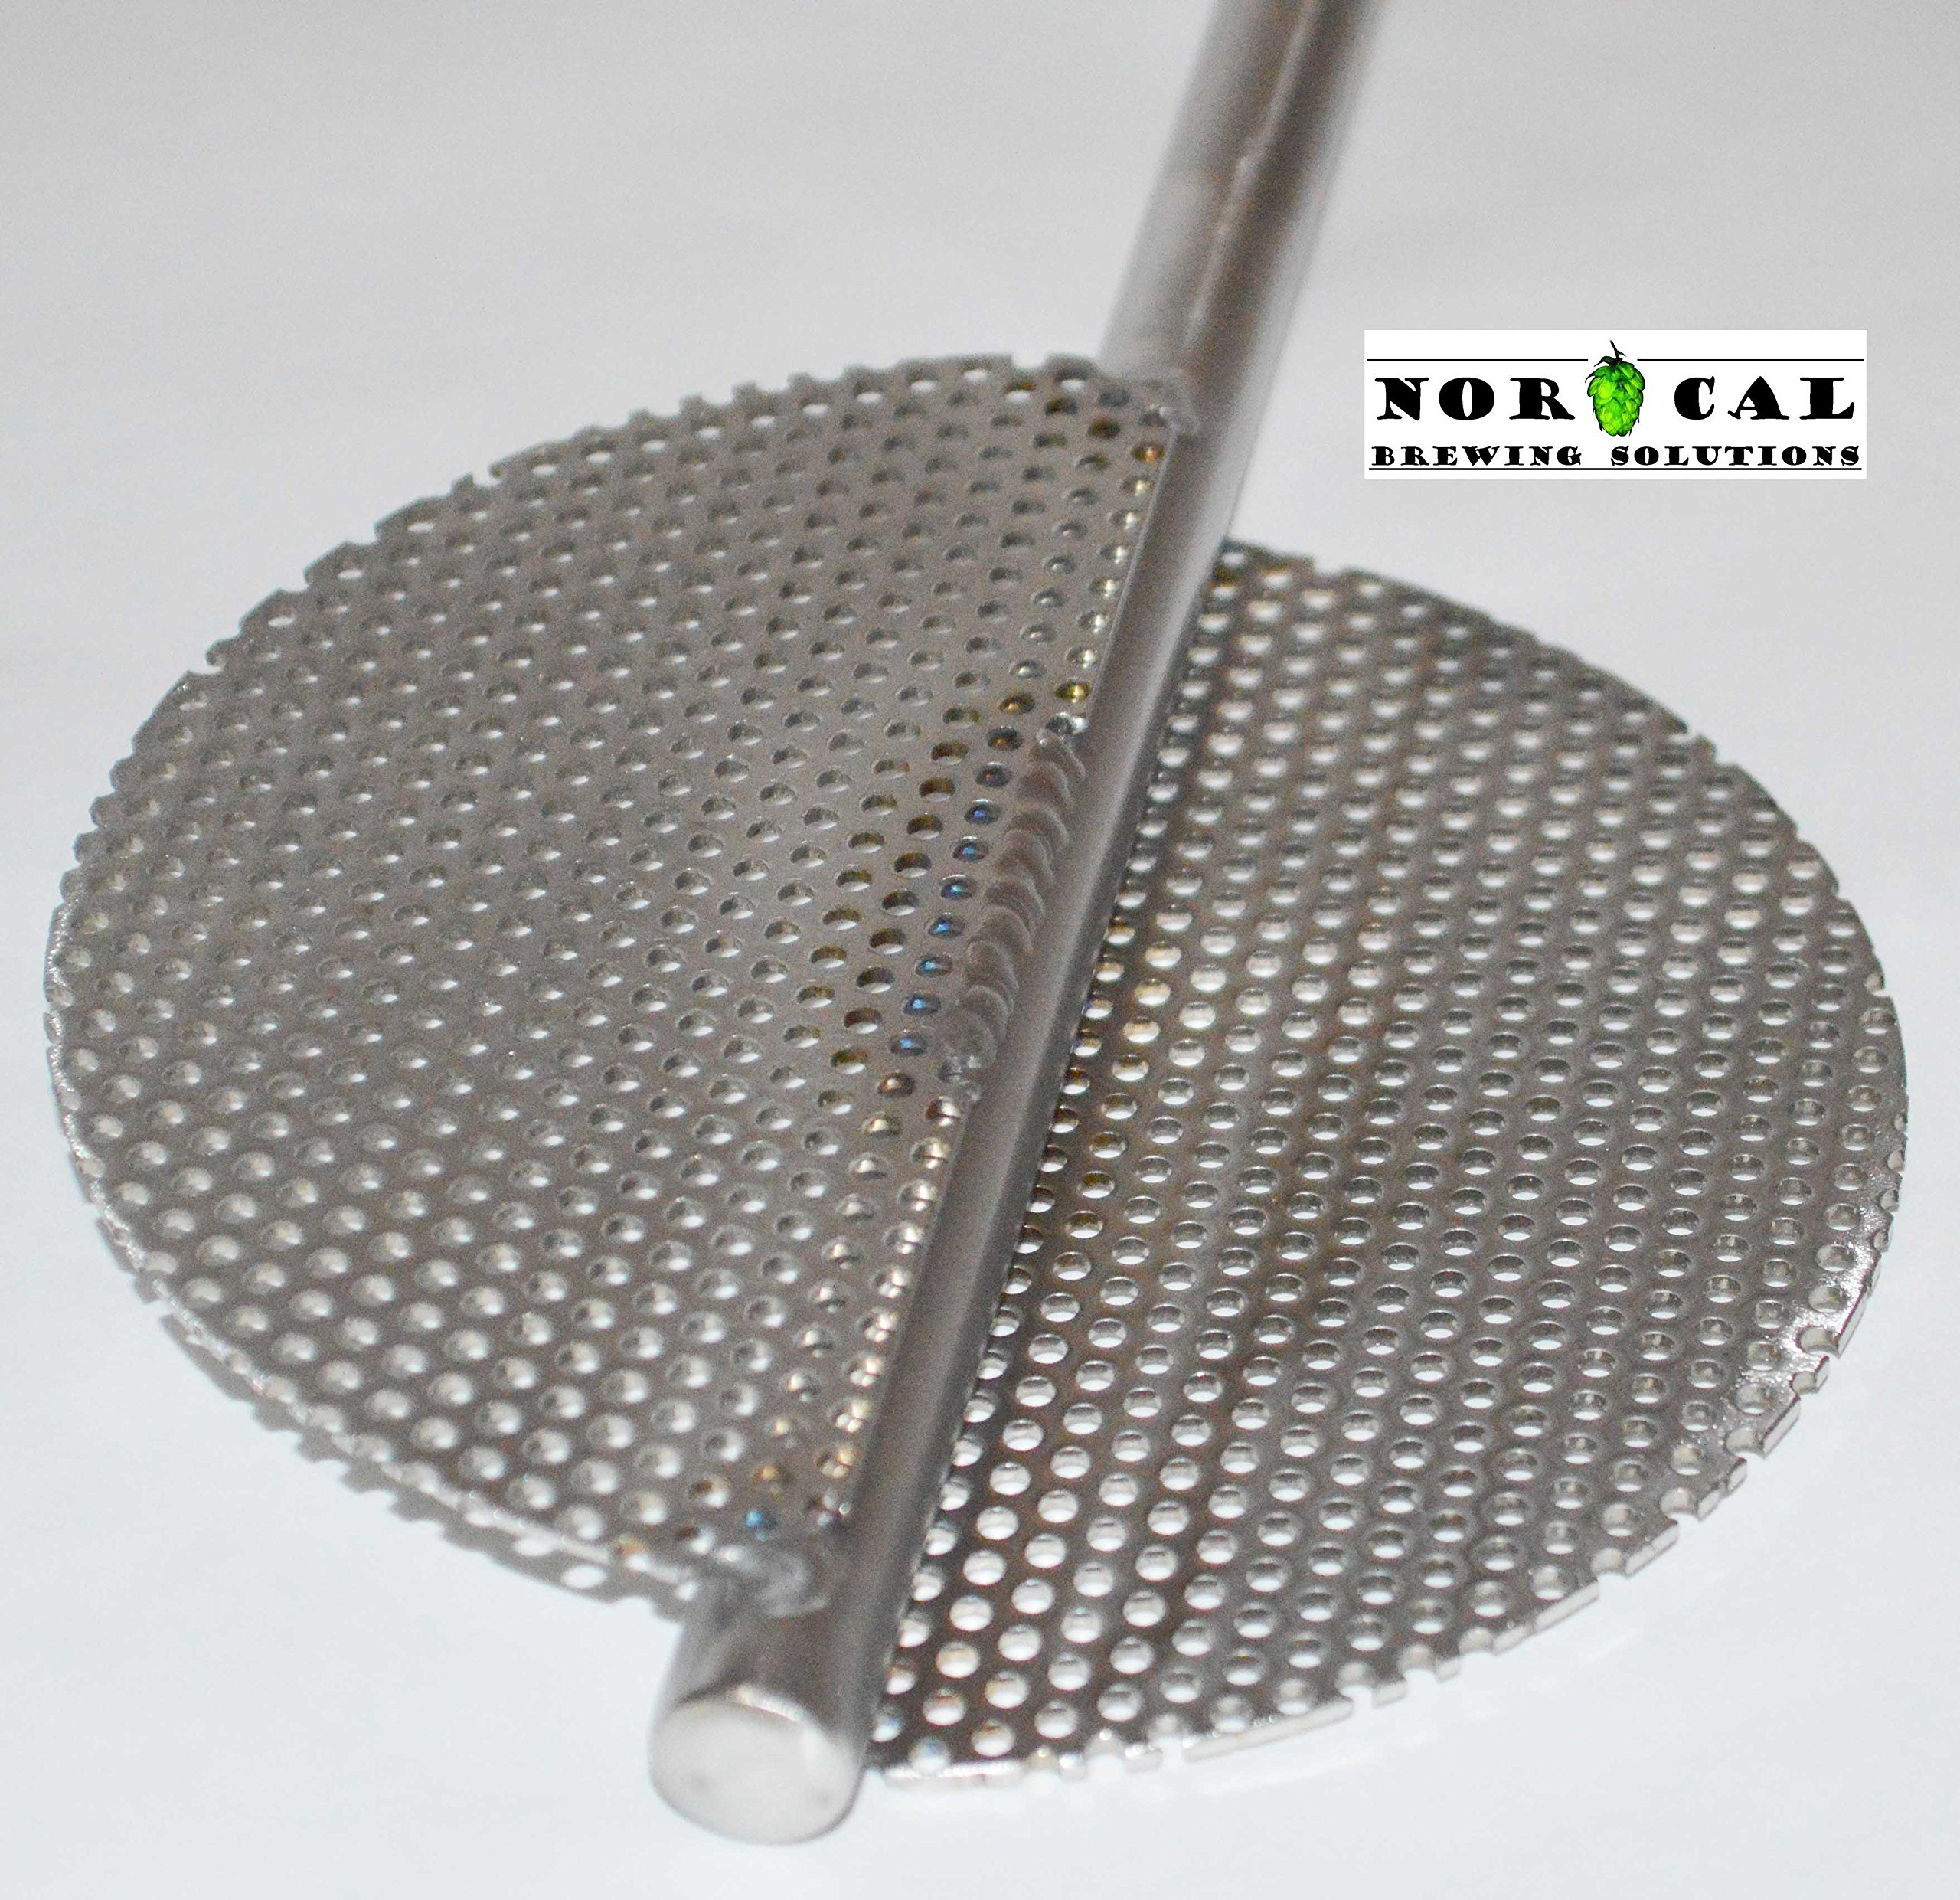 Jaybird Stainless Steel EXTREME Twin Blade Homebrew Beer Brewing Mash Paddle by NorCal Brewing Soutions